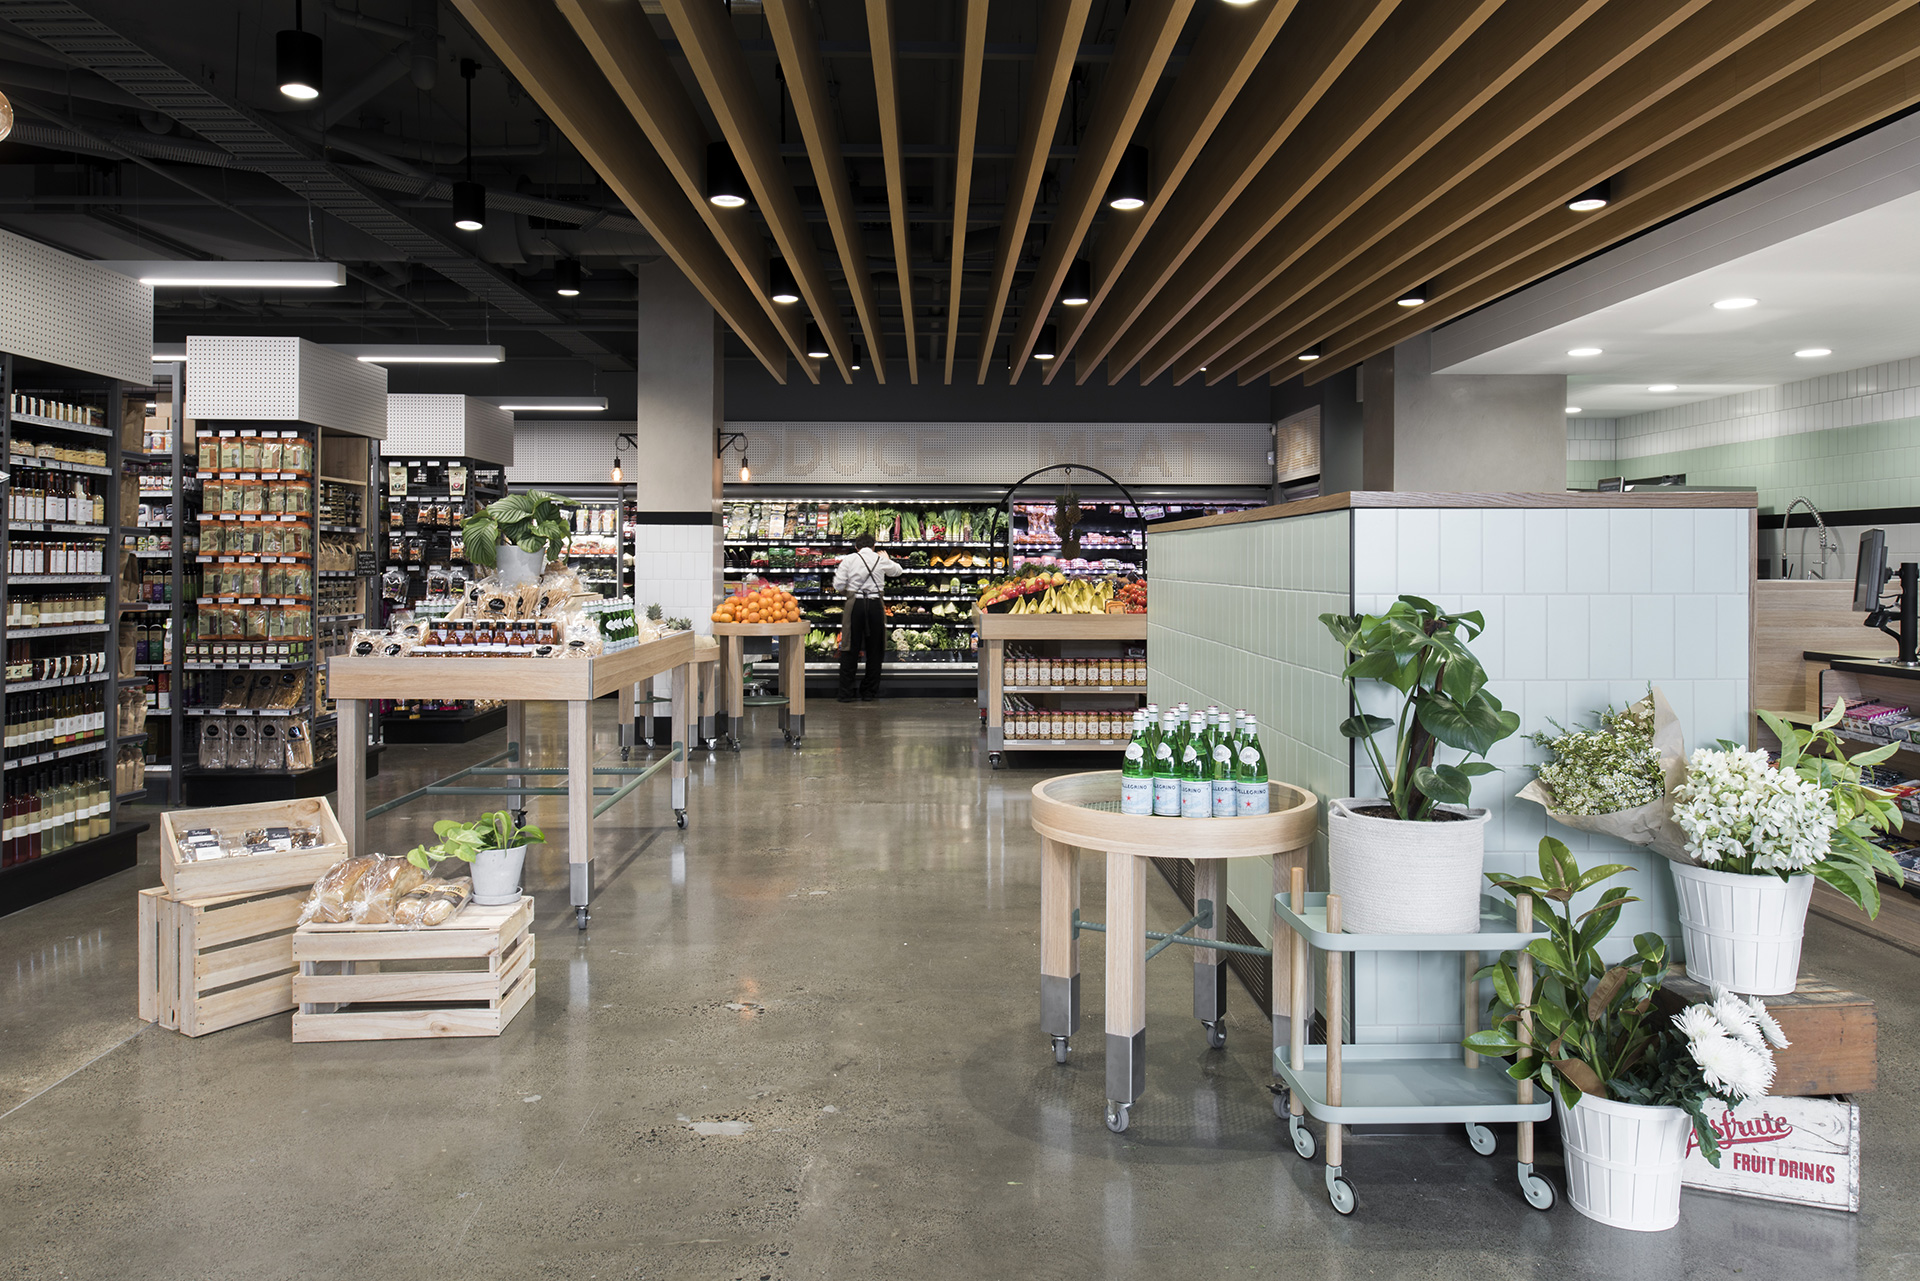 We Are Huntly's first project -the Prahran Grocer in Melbourne.